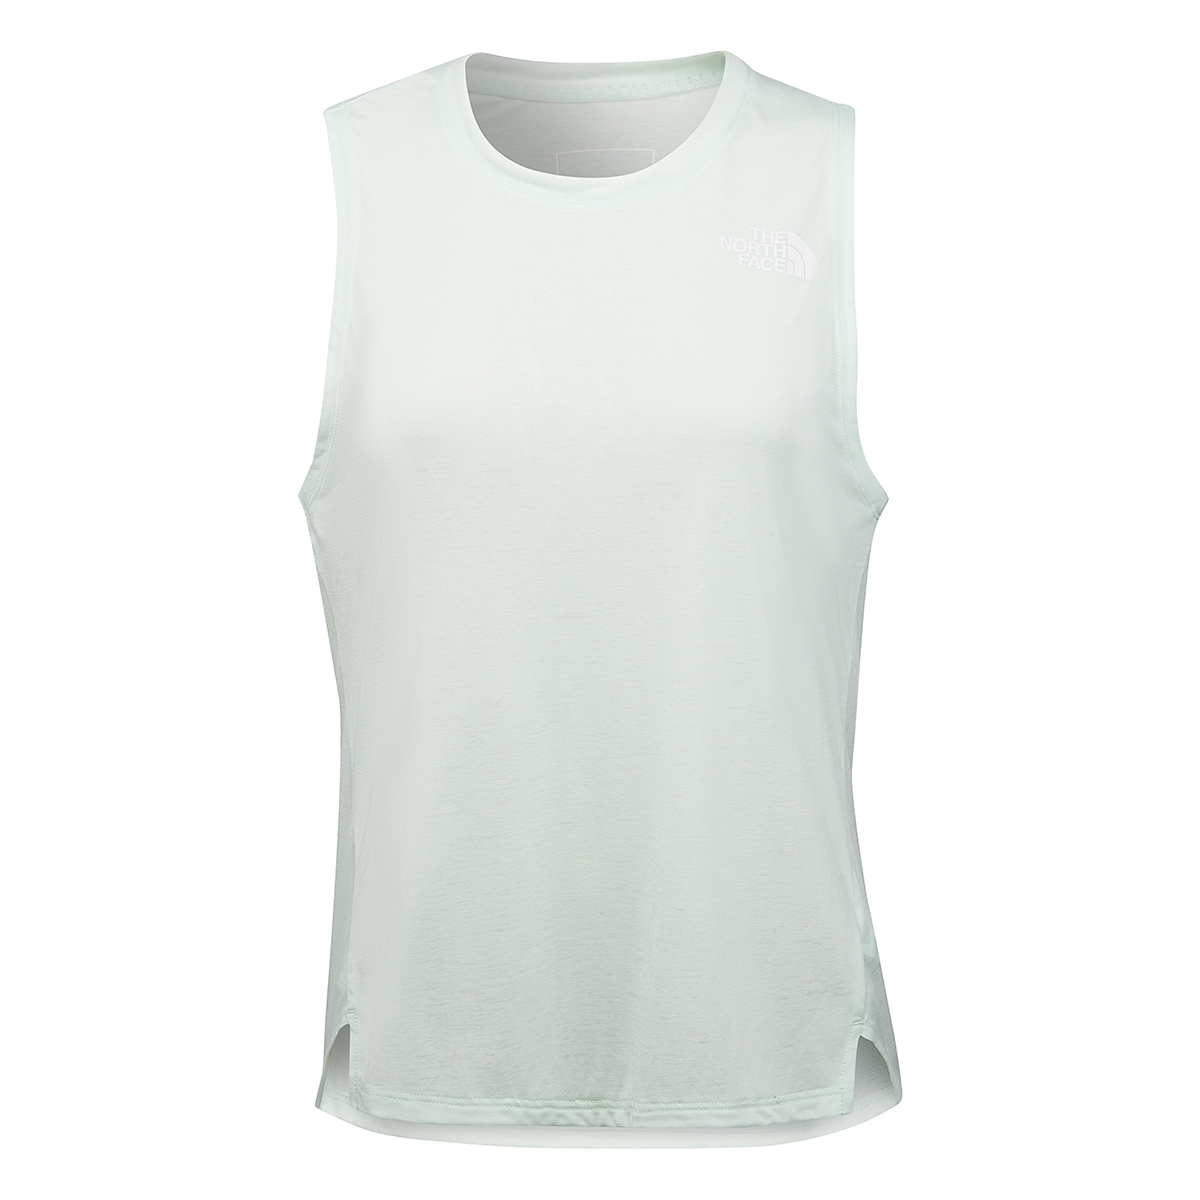 Women's The North Face Up With The Sun Tank, , large, image 1